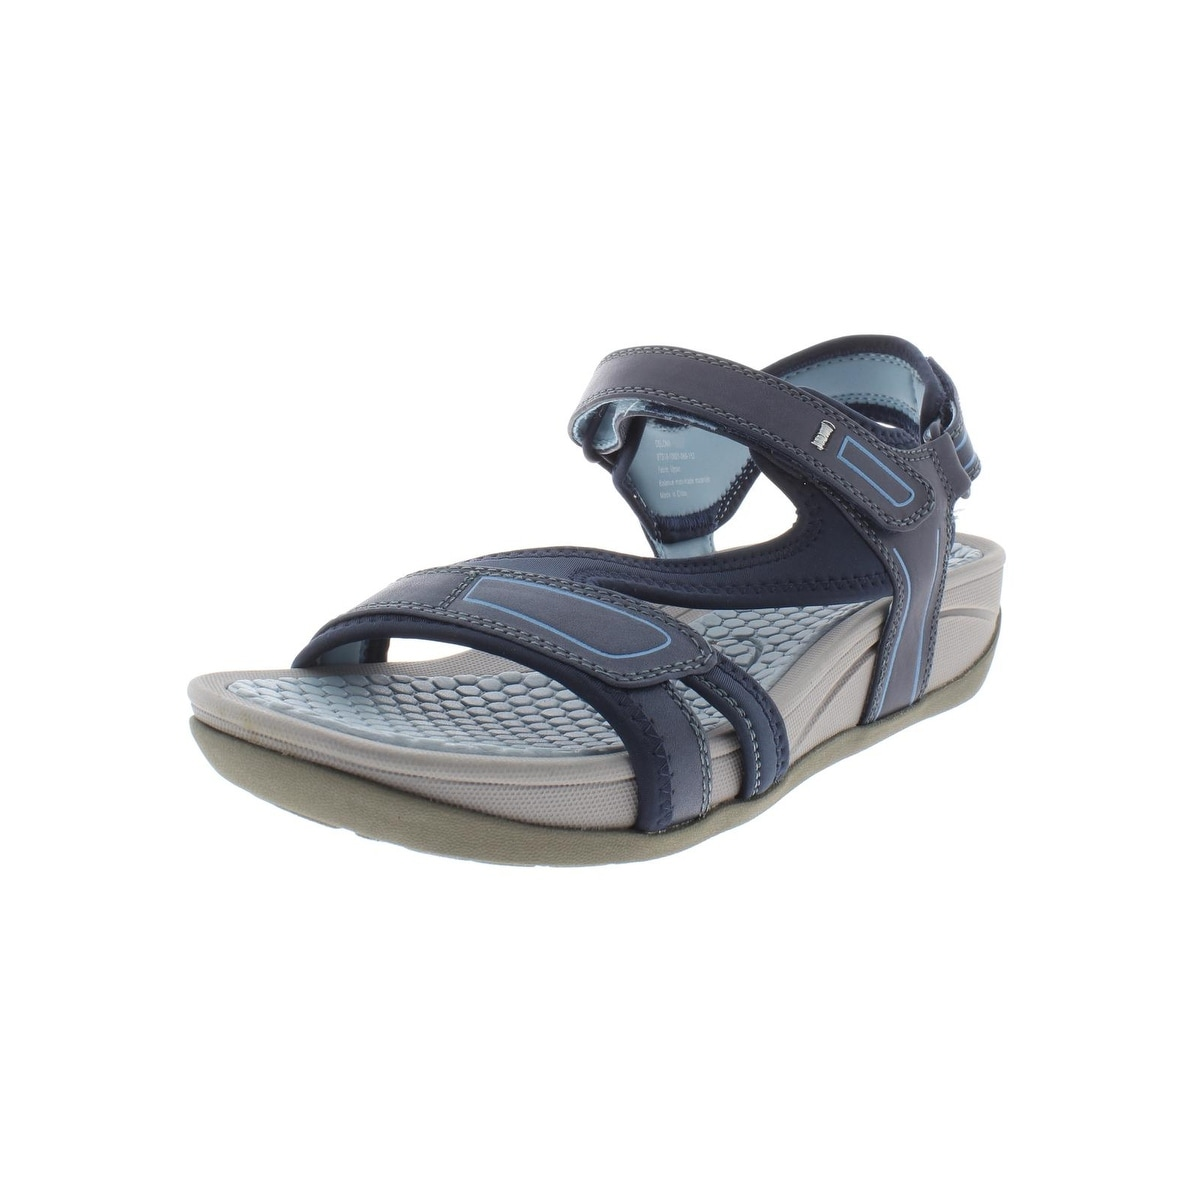 64604dfd6bf4 Buy Baretraps Women s Sandals Online at Overstock